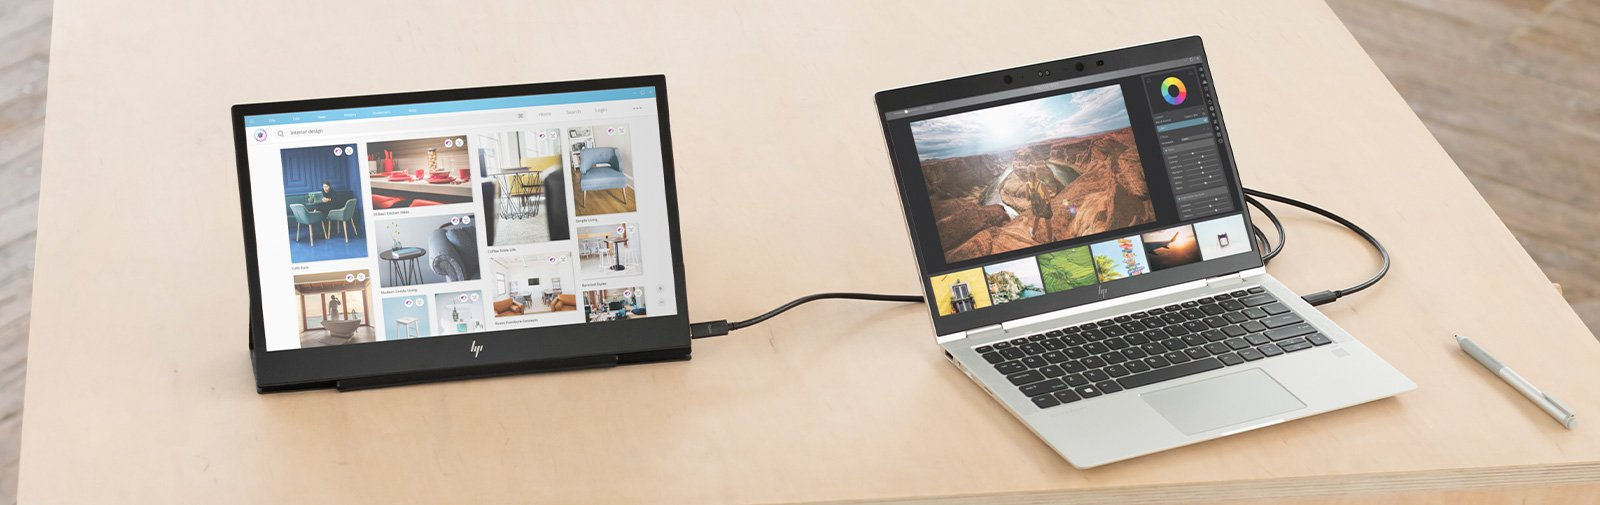 How to Set Up a Portable External Monitor for Your Laptop | HP Store India